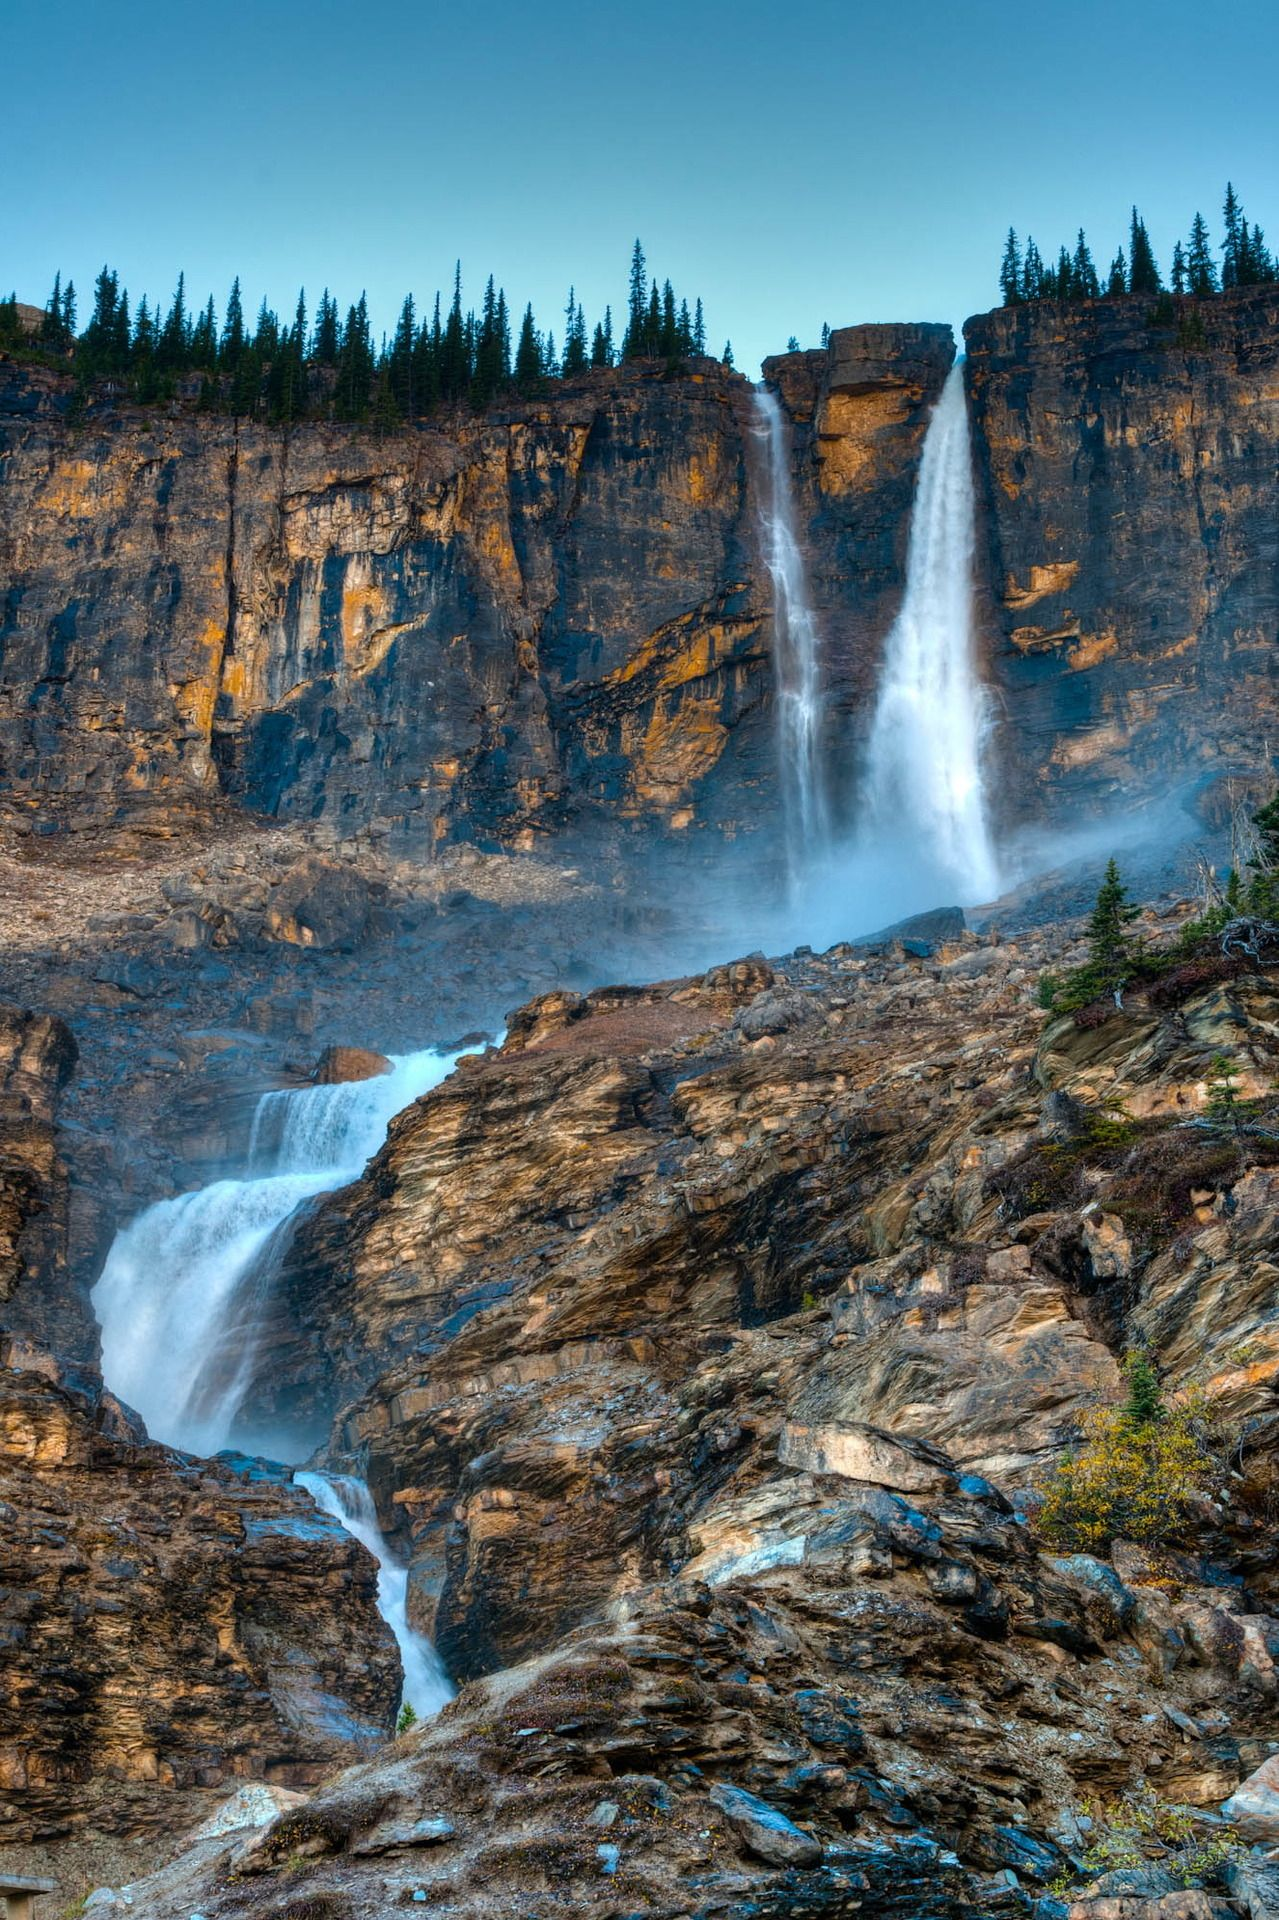 Twin Falls. Seen from the Iceline Trail in Yoho National Park, British Columbia, Canada.